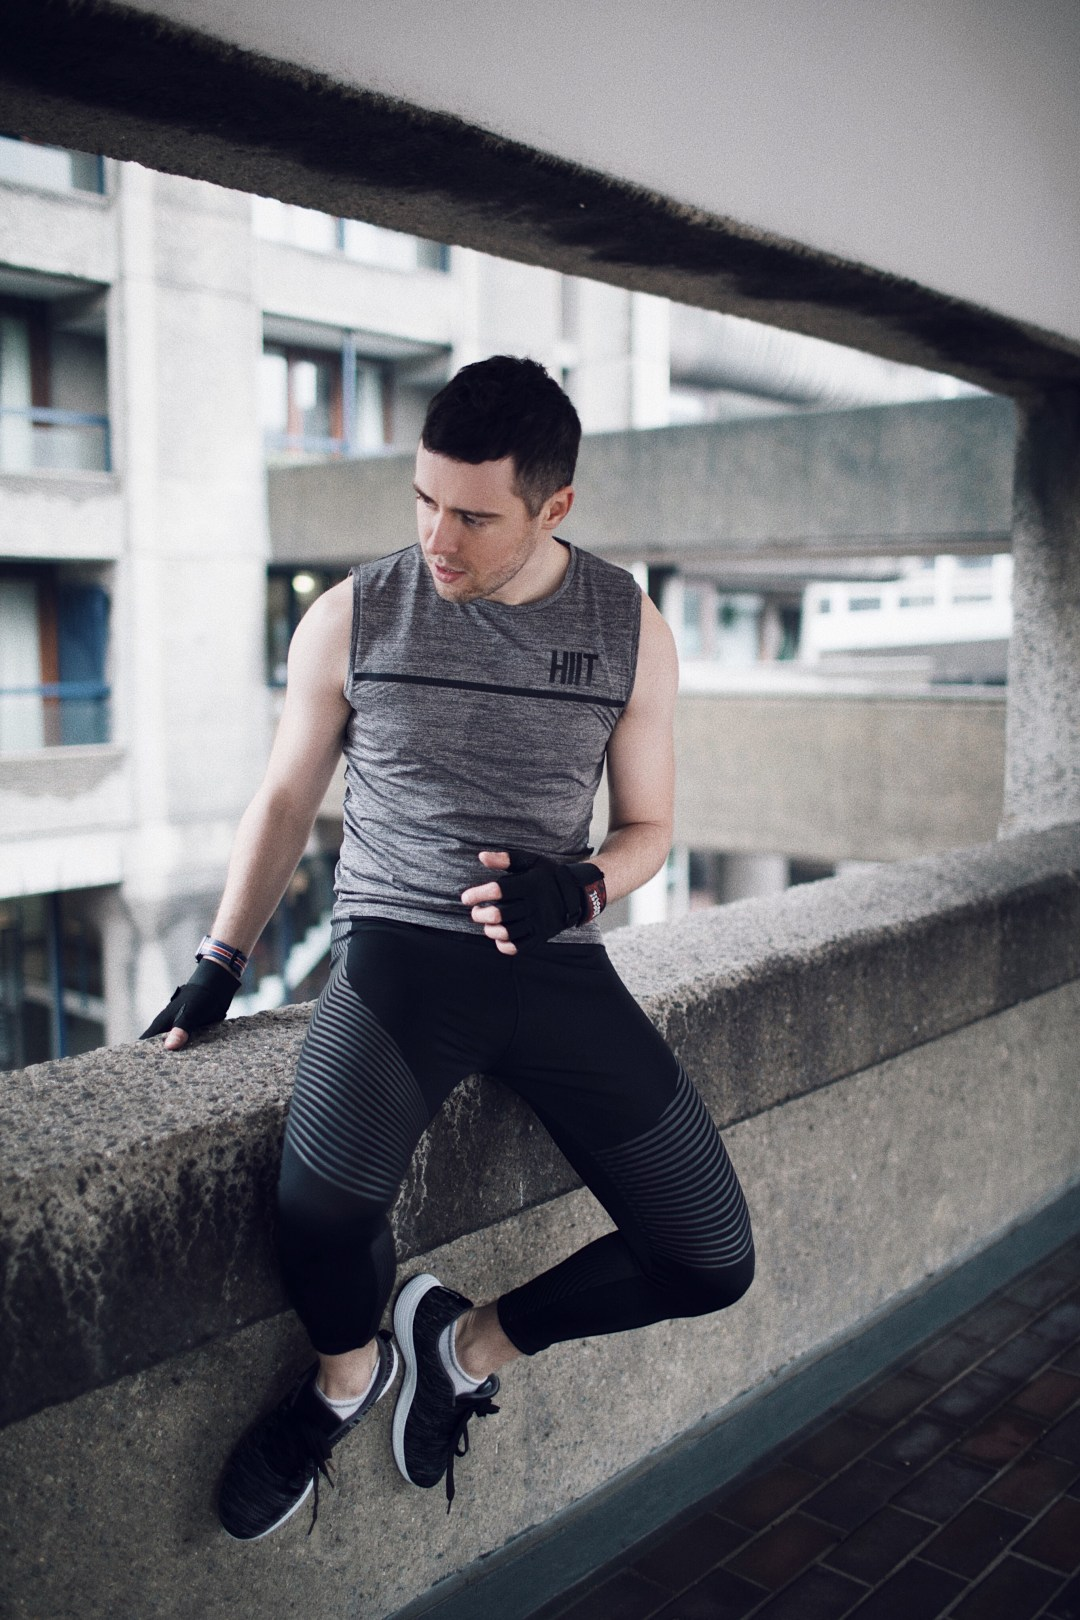 HIIT Sportswear at Burton Menswear London. Shot at Barbican by Justina Naviskaite @itsjustinesjournal. Blog by Skirmantas Petraitis.